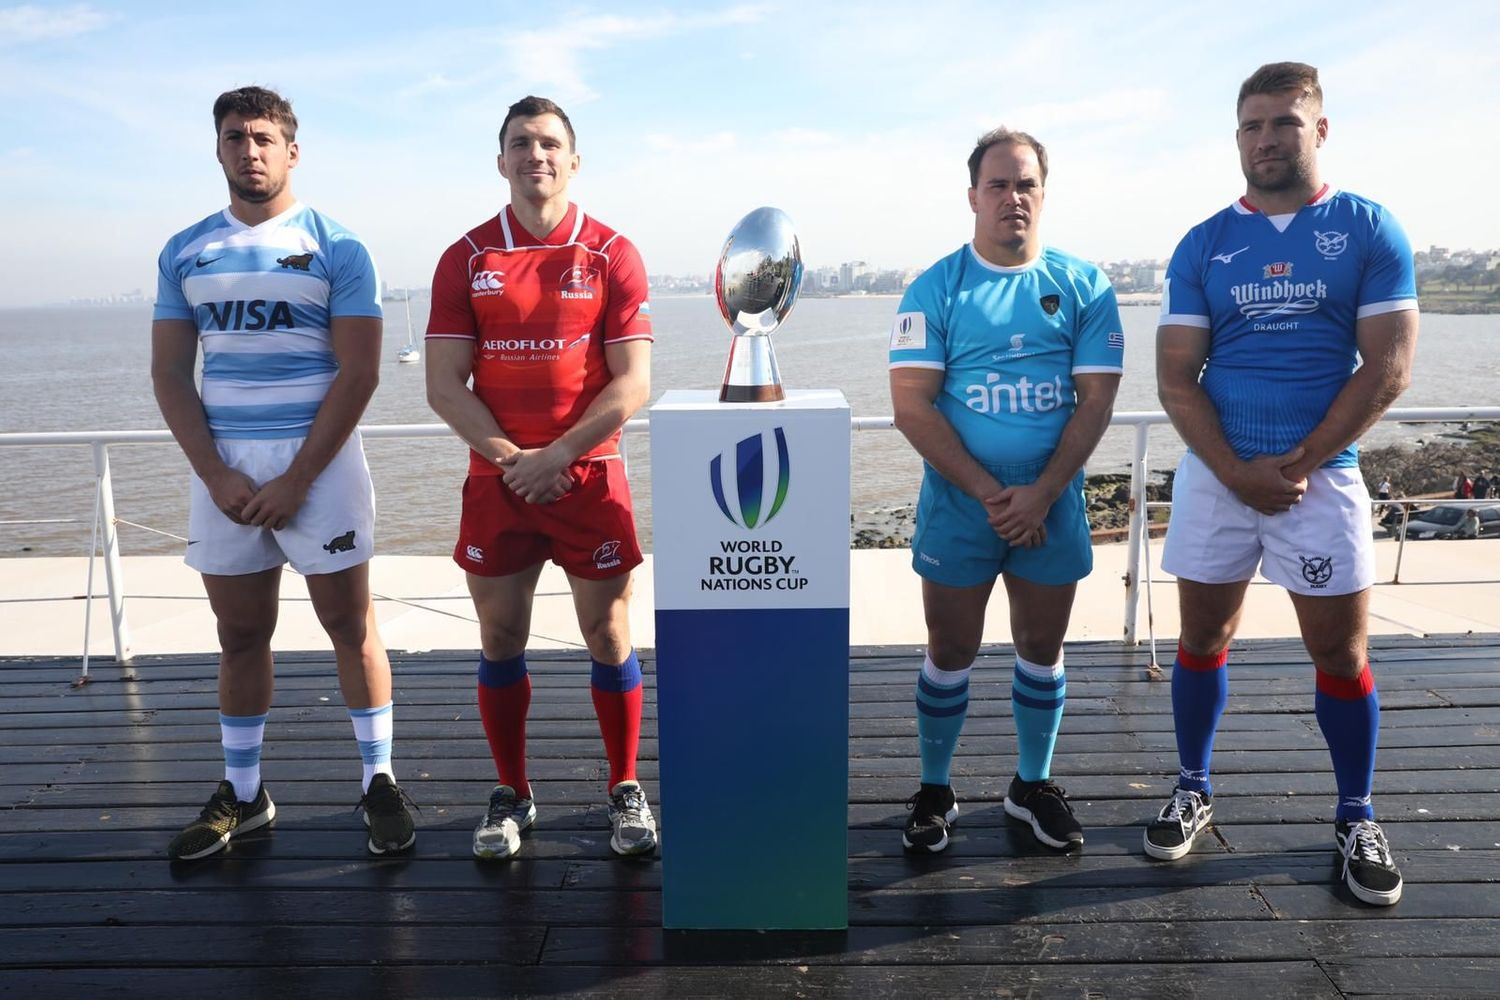 World Rugby Nations Cup 2019: Captains' photo